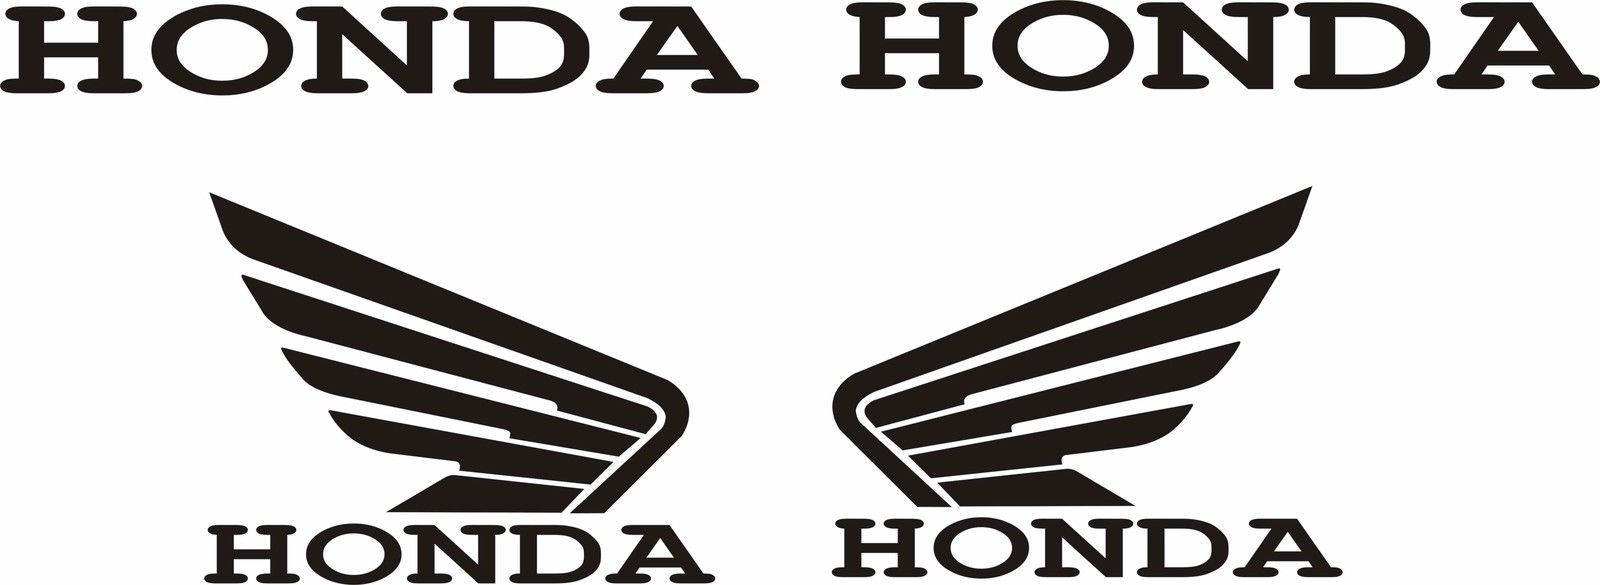 Honda Wings Decals Stickers Motorcycle AUTO Window CUSTOM Sizes - Stickers on motorcycles